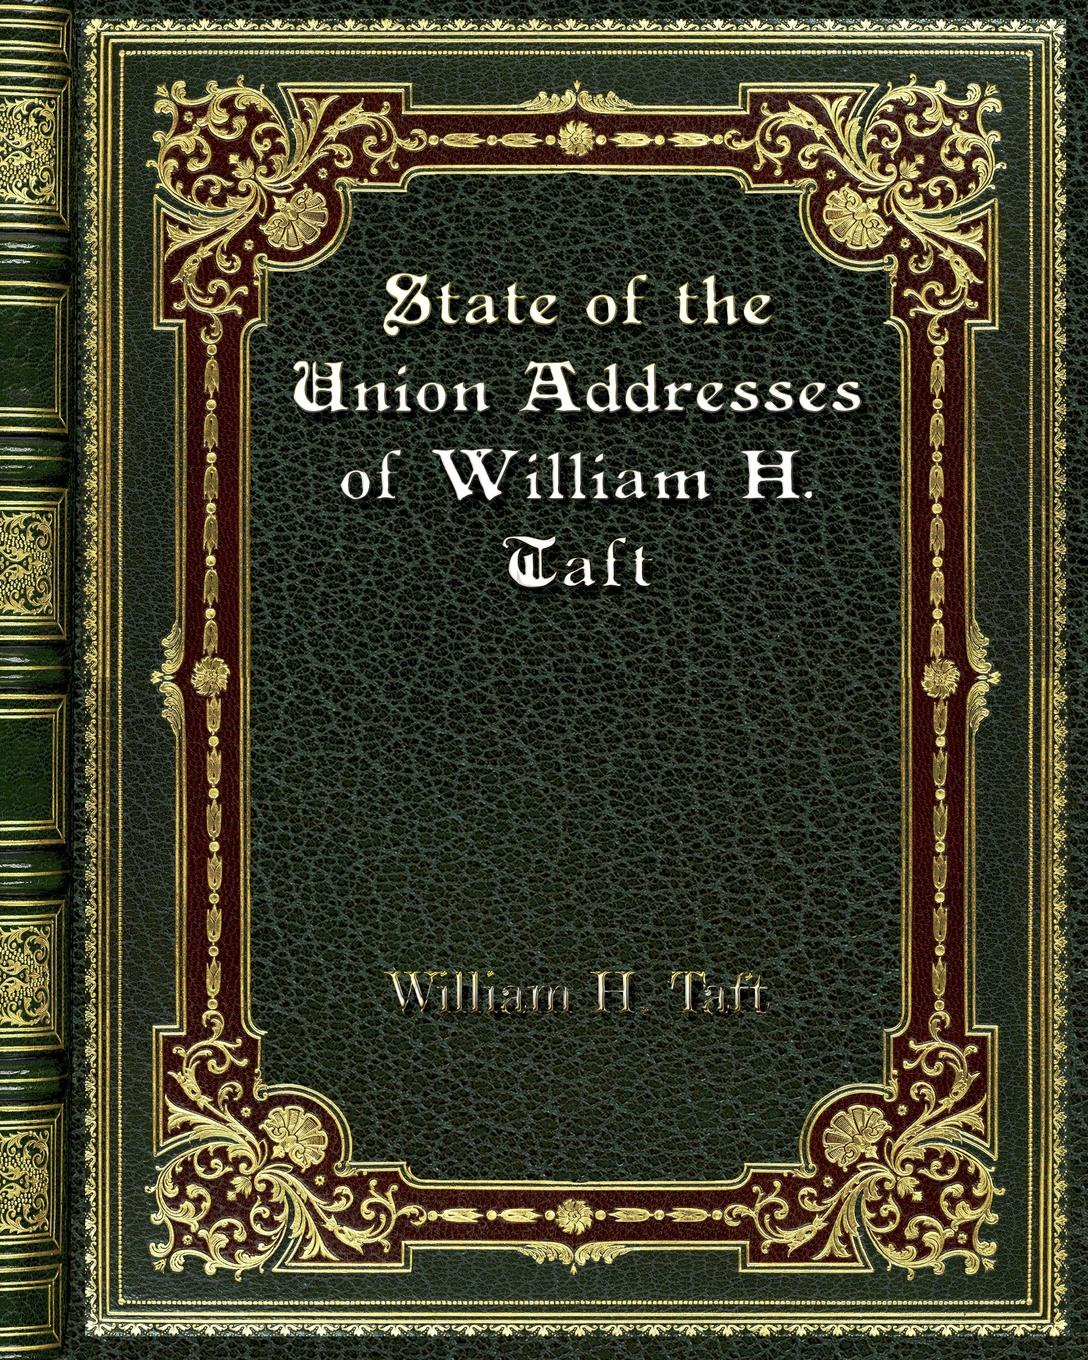 лучшая цена William H. Taft State of the Union Addresses of William H. Taft